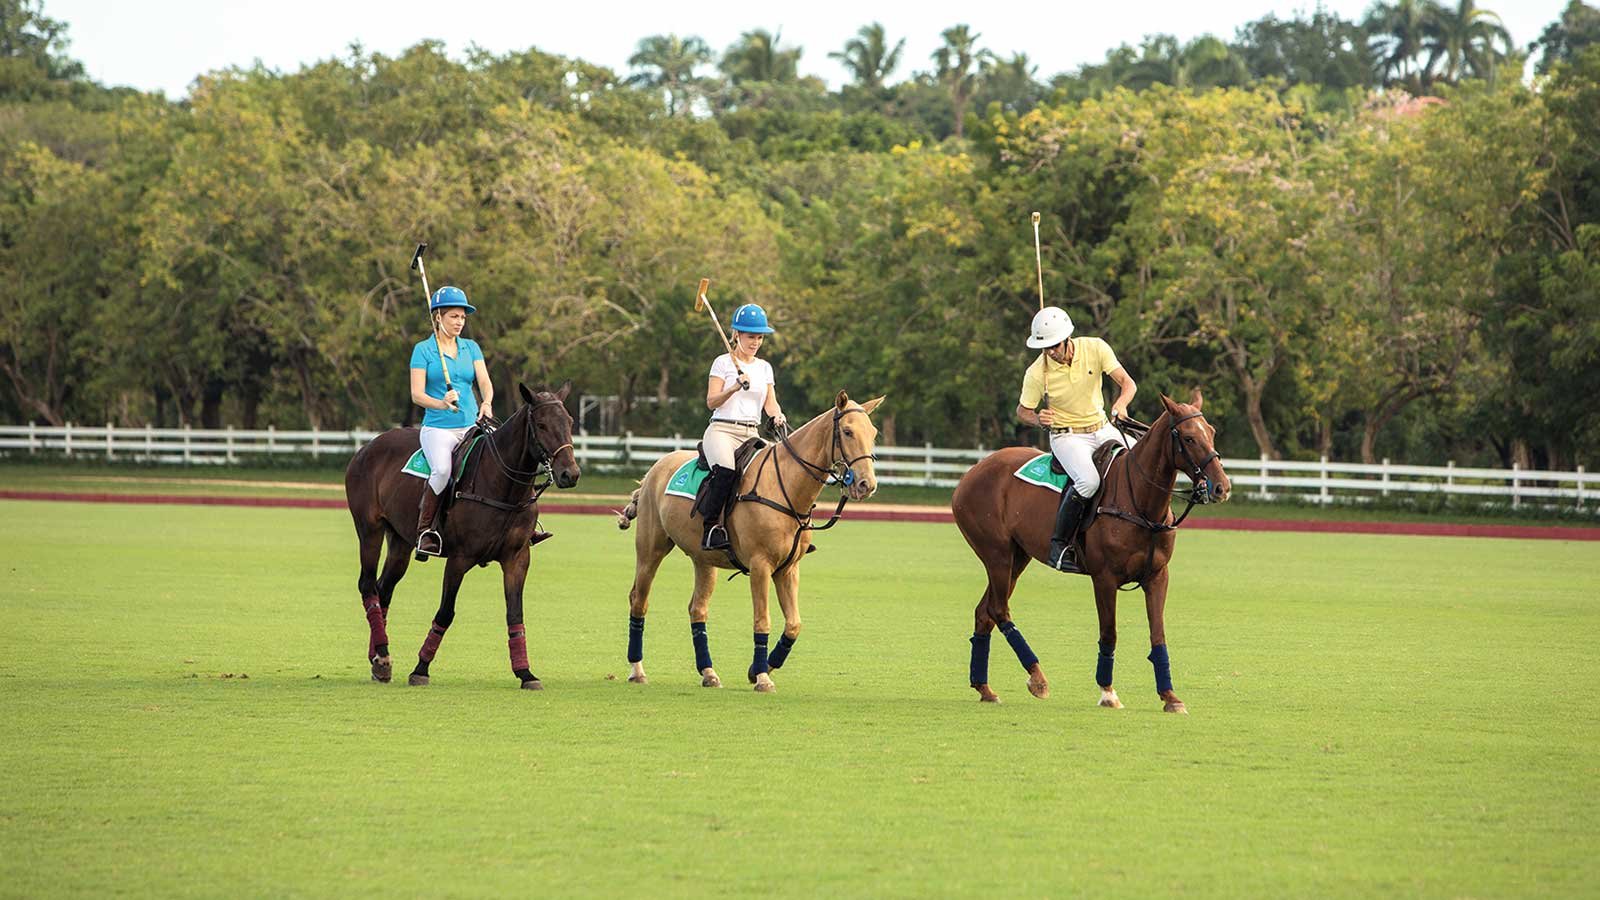 The equestrian center allows for everything from a simple, pleasant ride with the family to expert polo lessons.